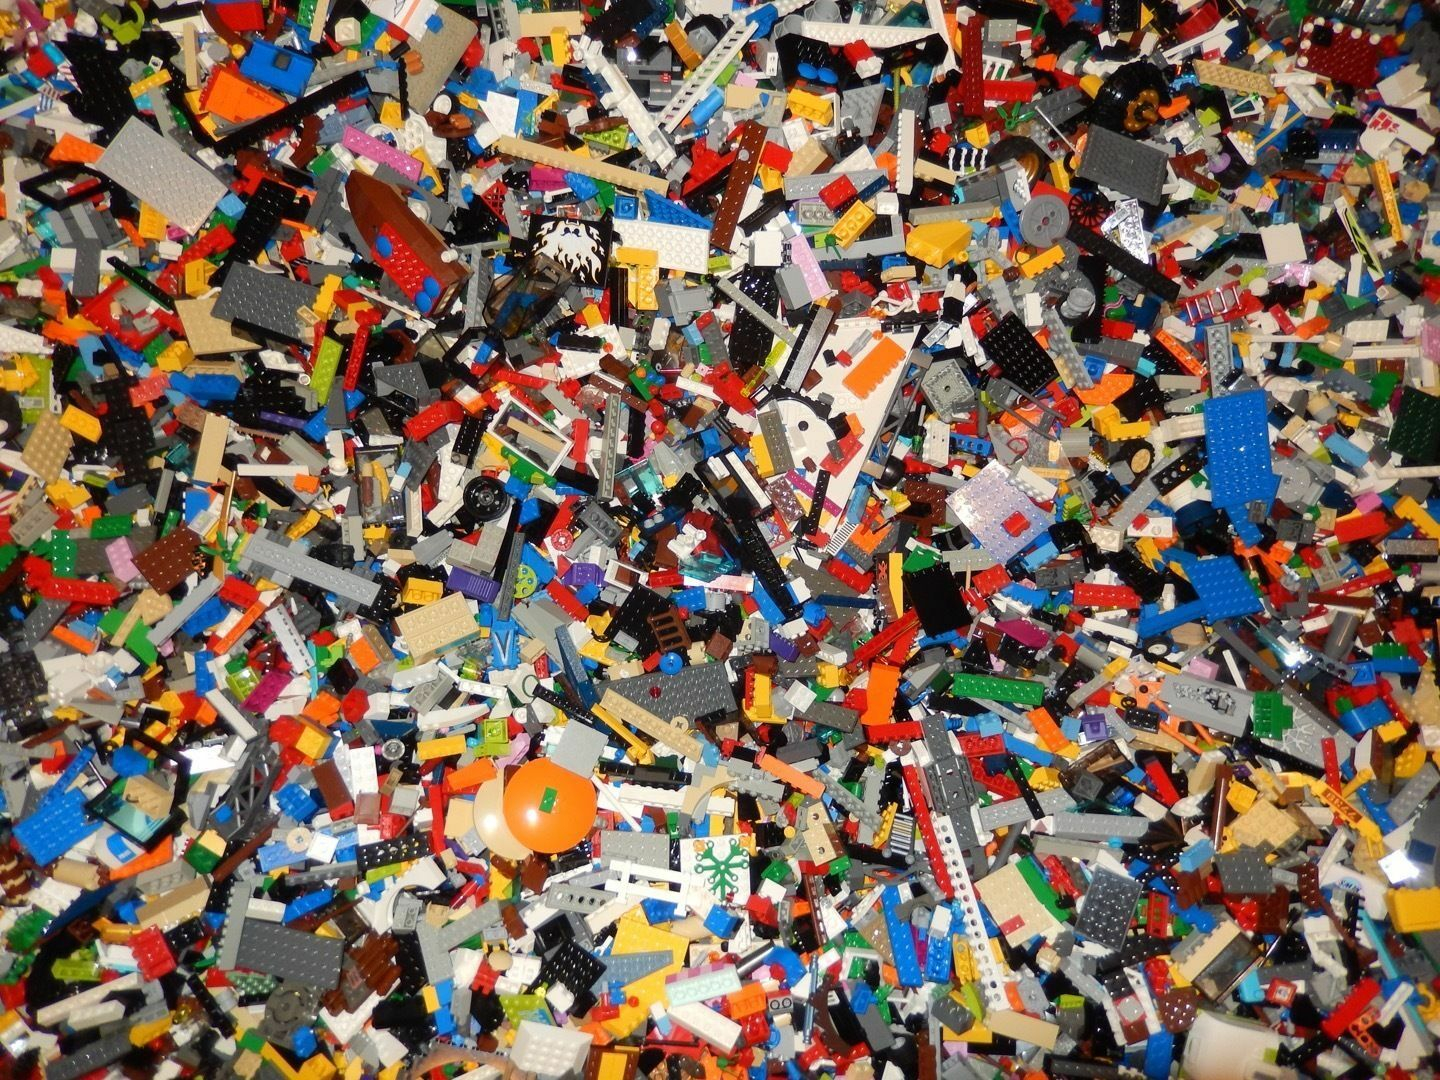 LEGO Lot 6 pounds LBS Bulk Lot  Cleaned Sanitized Clean 100% Genuine  negozio di vendita outlet